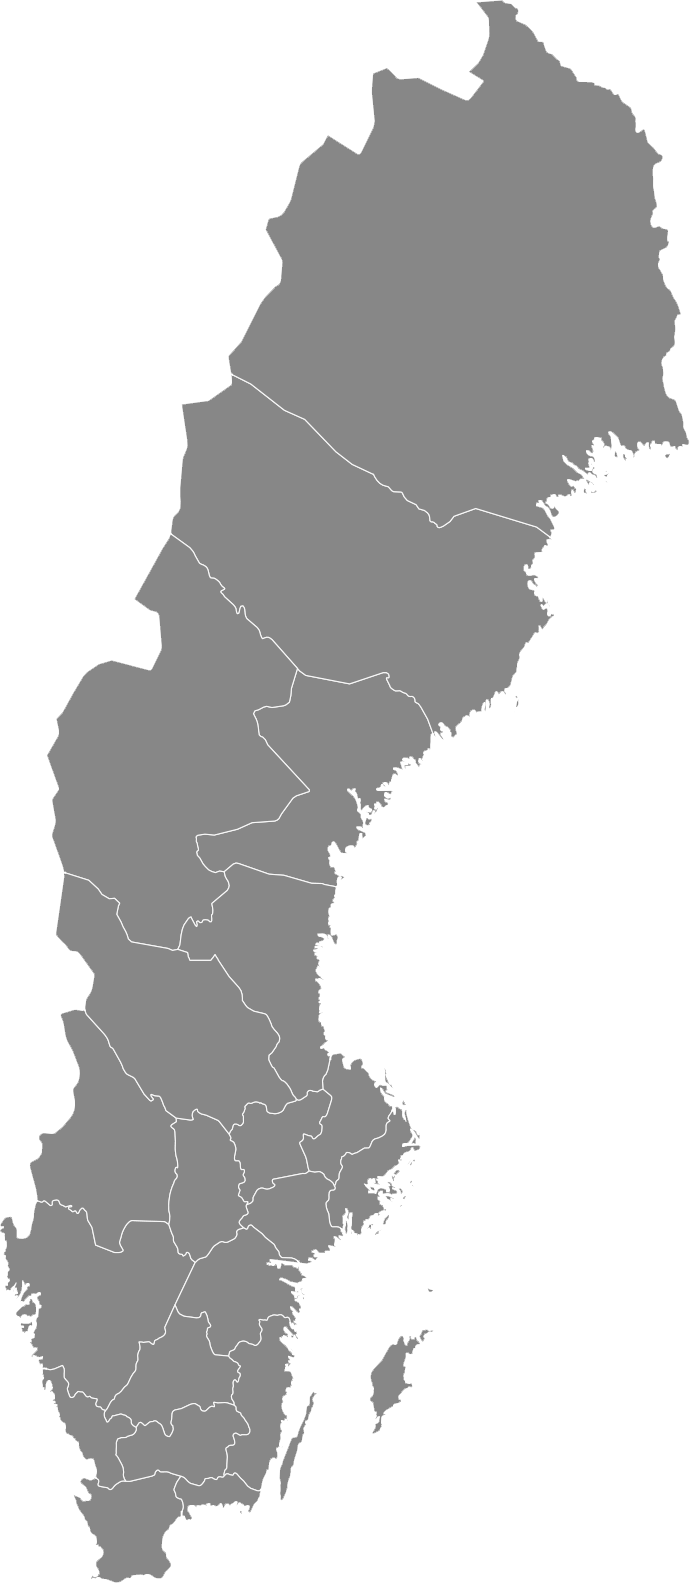 a single map of Sweden